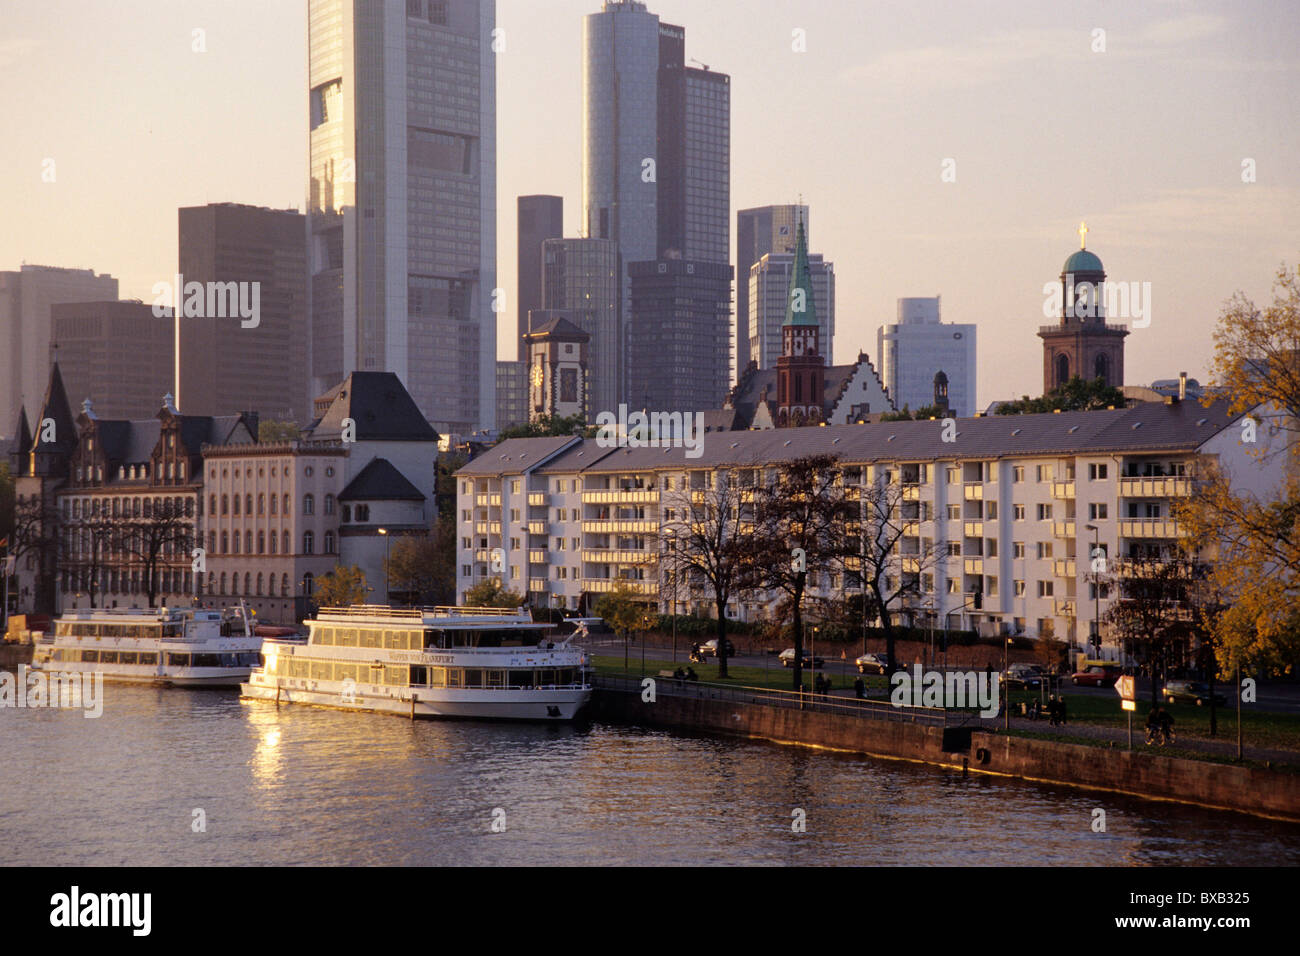 Boats and houses on the Main River, Mainkai, skyline of the financial district in the back, Frankfurt am Main, Hesse - Stock Image